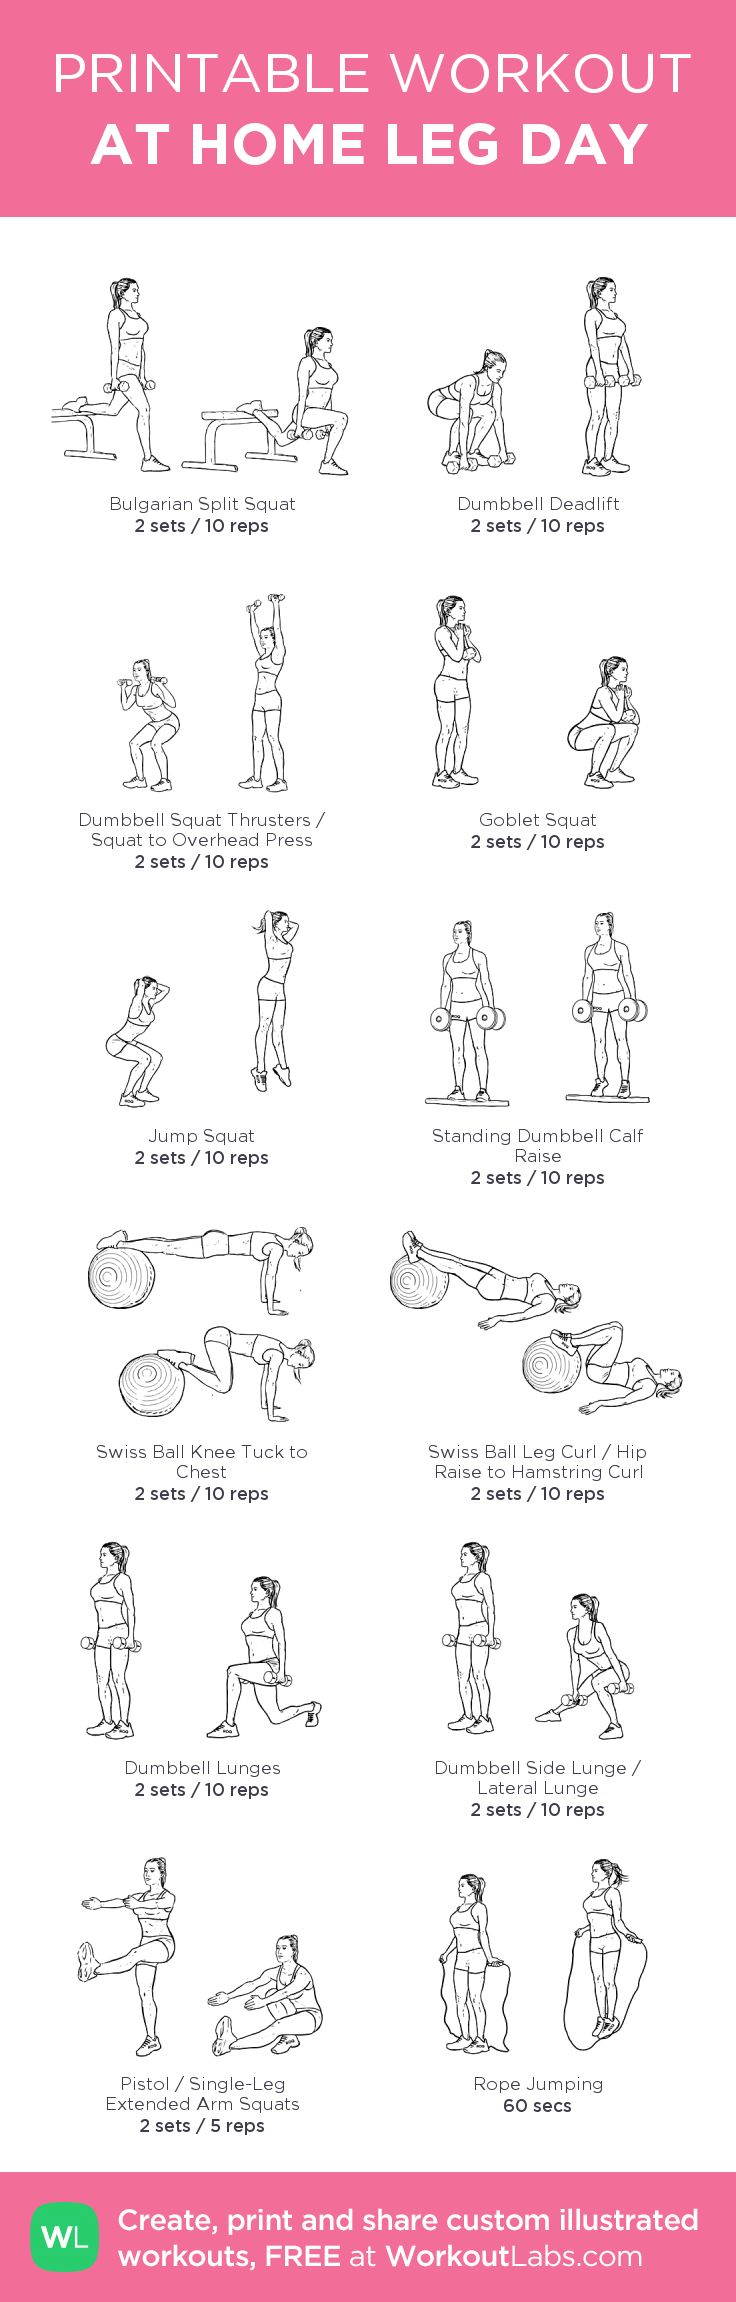 leg day female workout